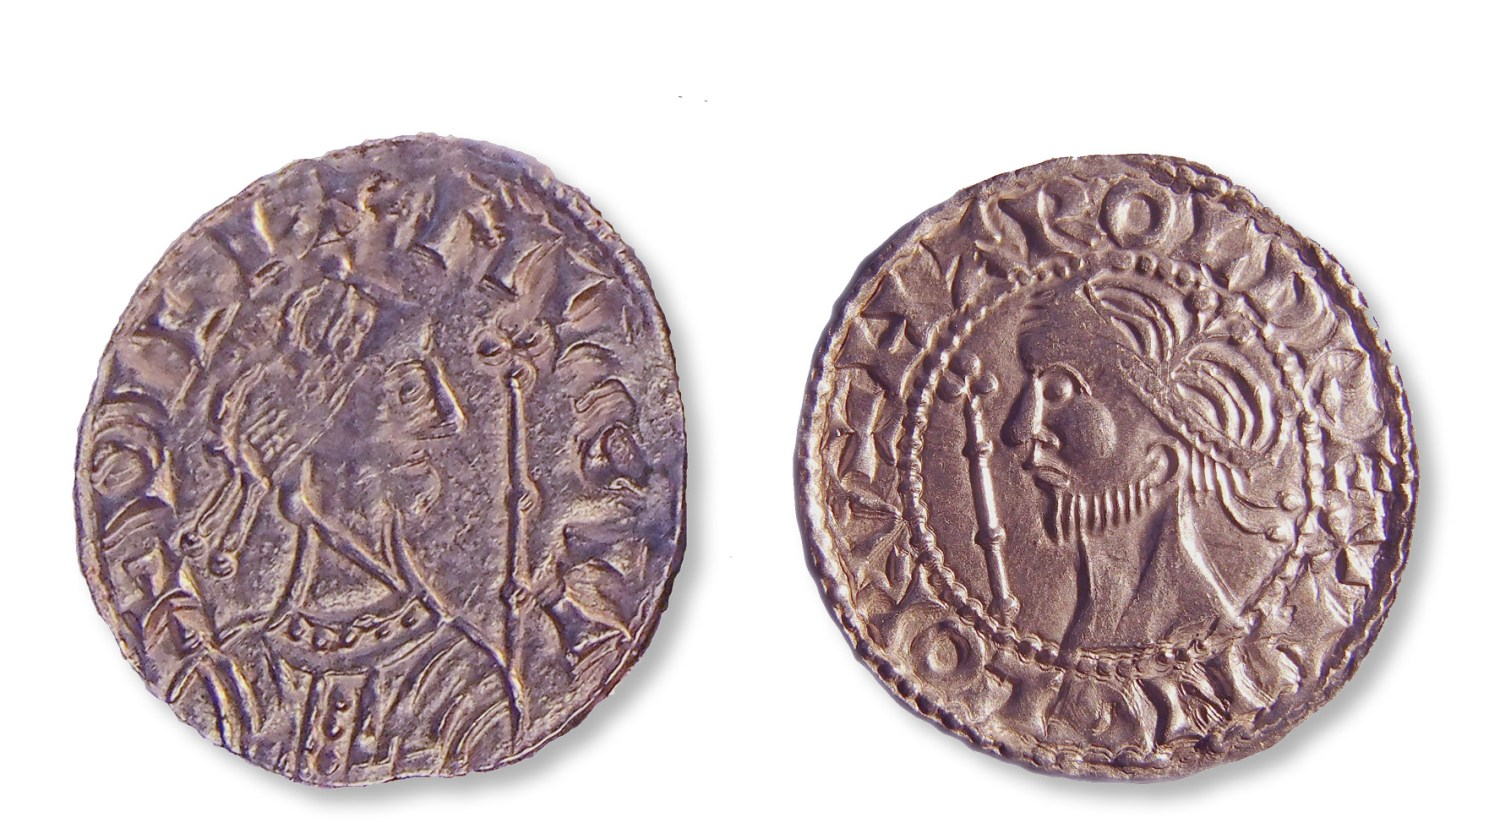 The hoard contains 1,236 coins of Harold II (left) and 1,310 coins of William I (far left). Their busts are not realistic portraits but fairly interchangeable stylised images of kings an aspirational imitation of the coins of Byzantine emperors.